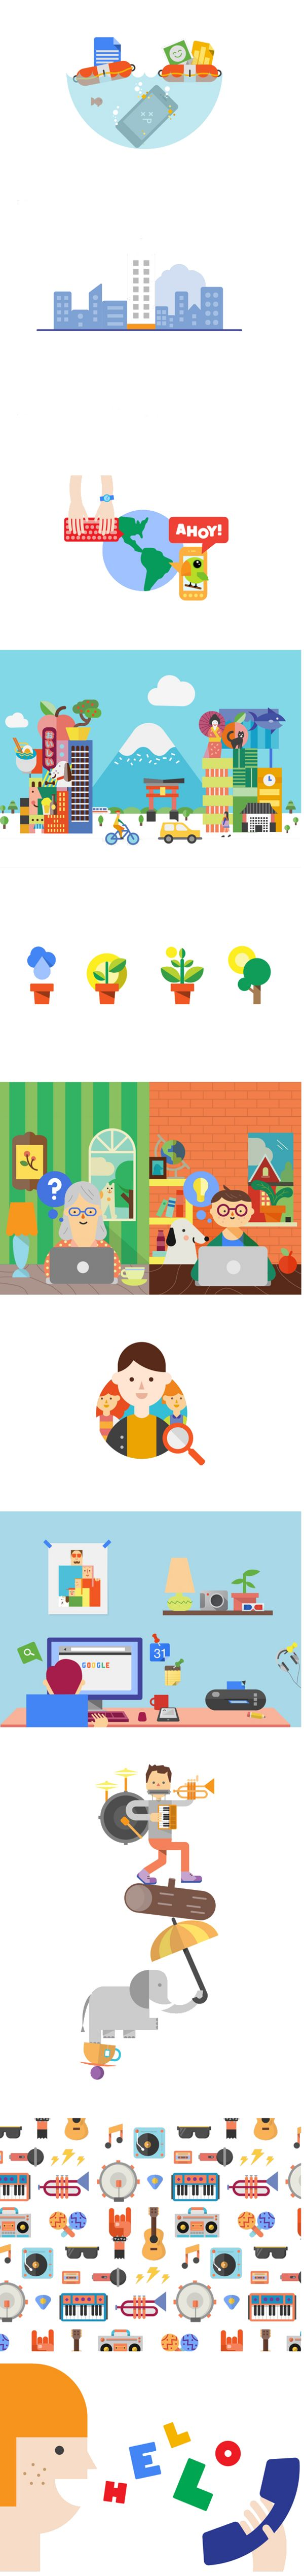 Google Illustrations